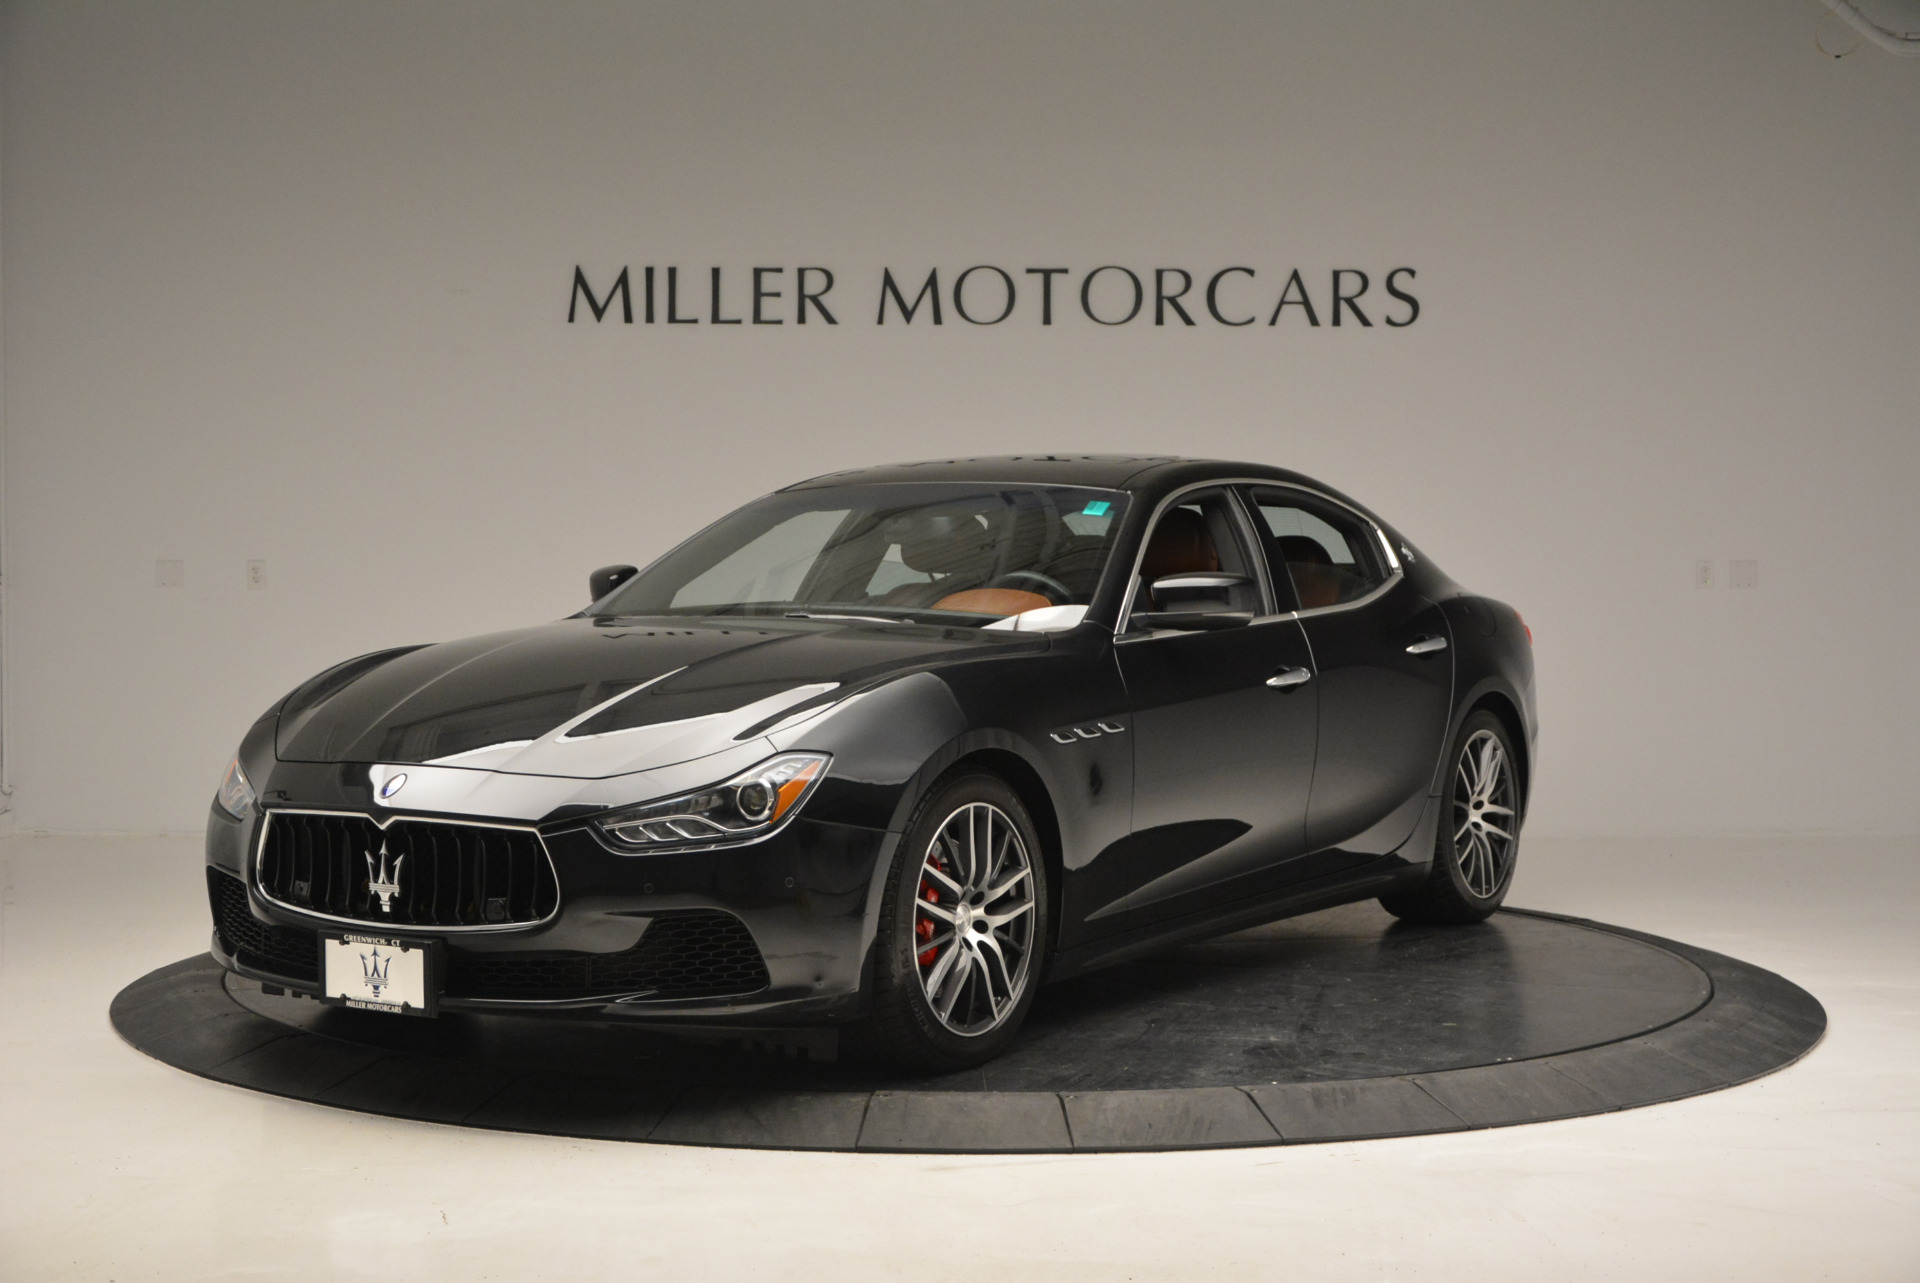 Used 2014 Maserati Ghibli S Q4 for sale Sold at Pagani of Greenwich in Greenwich CT 06830 1